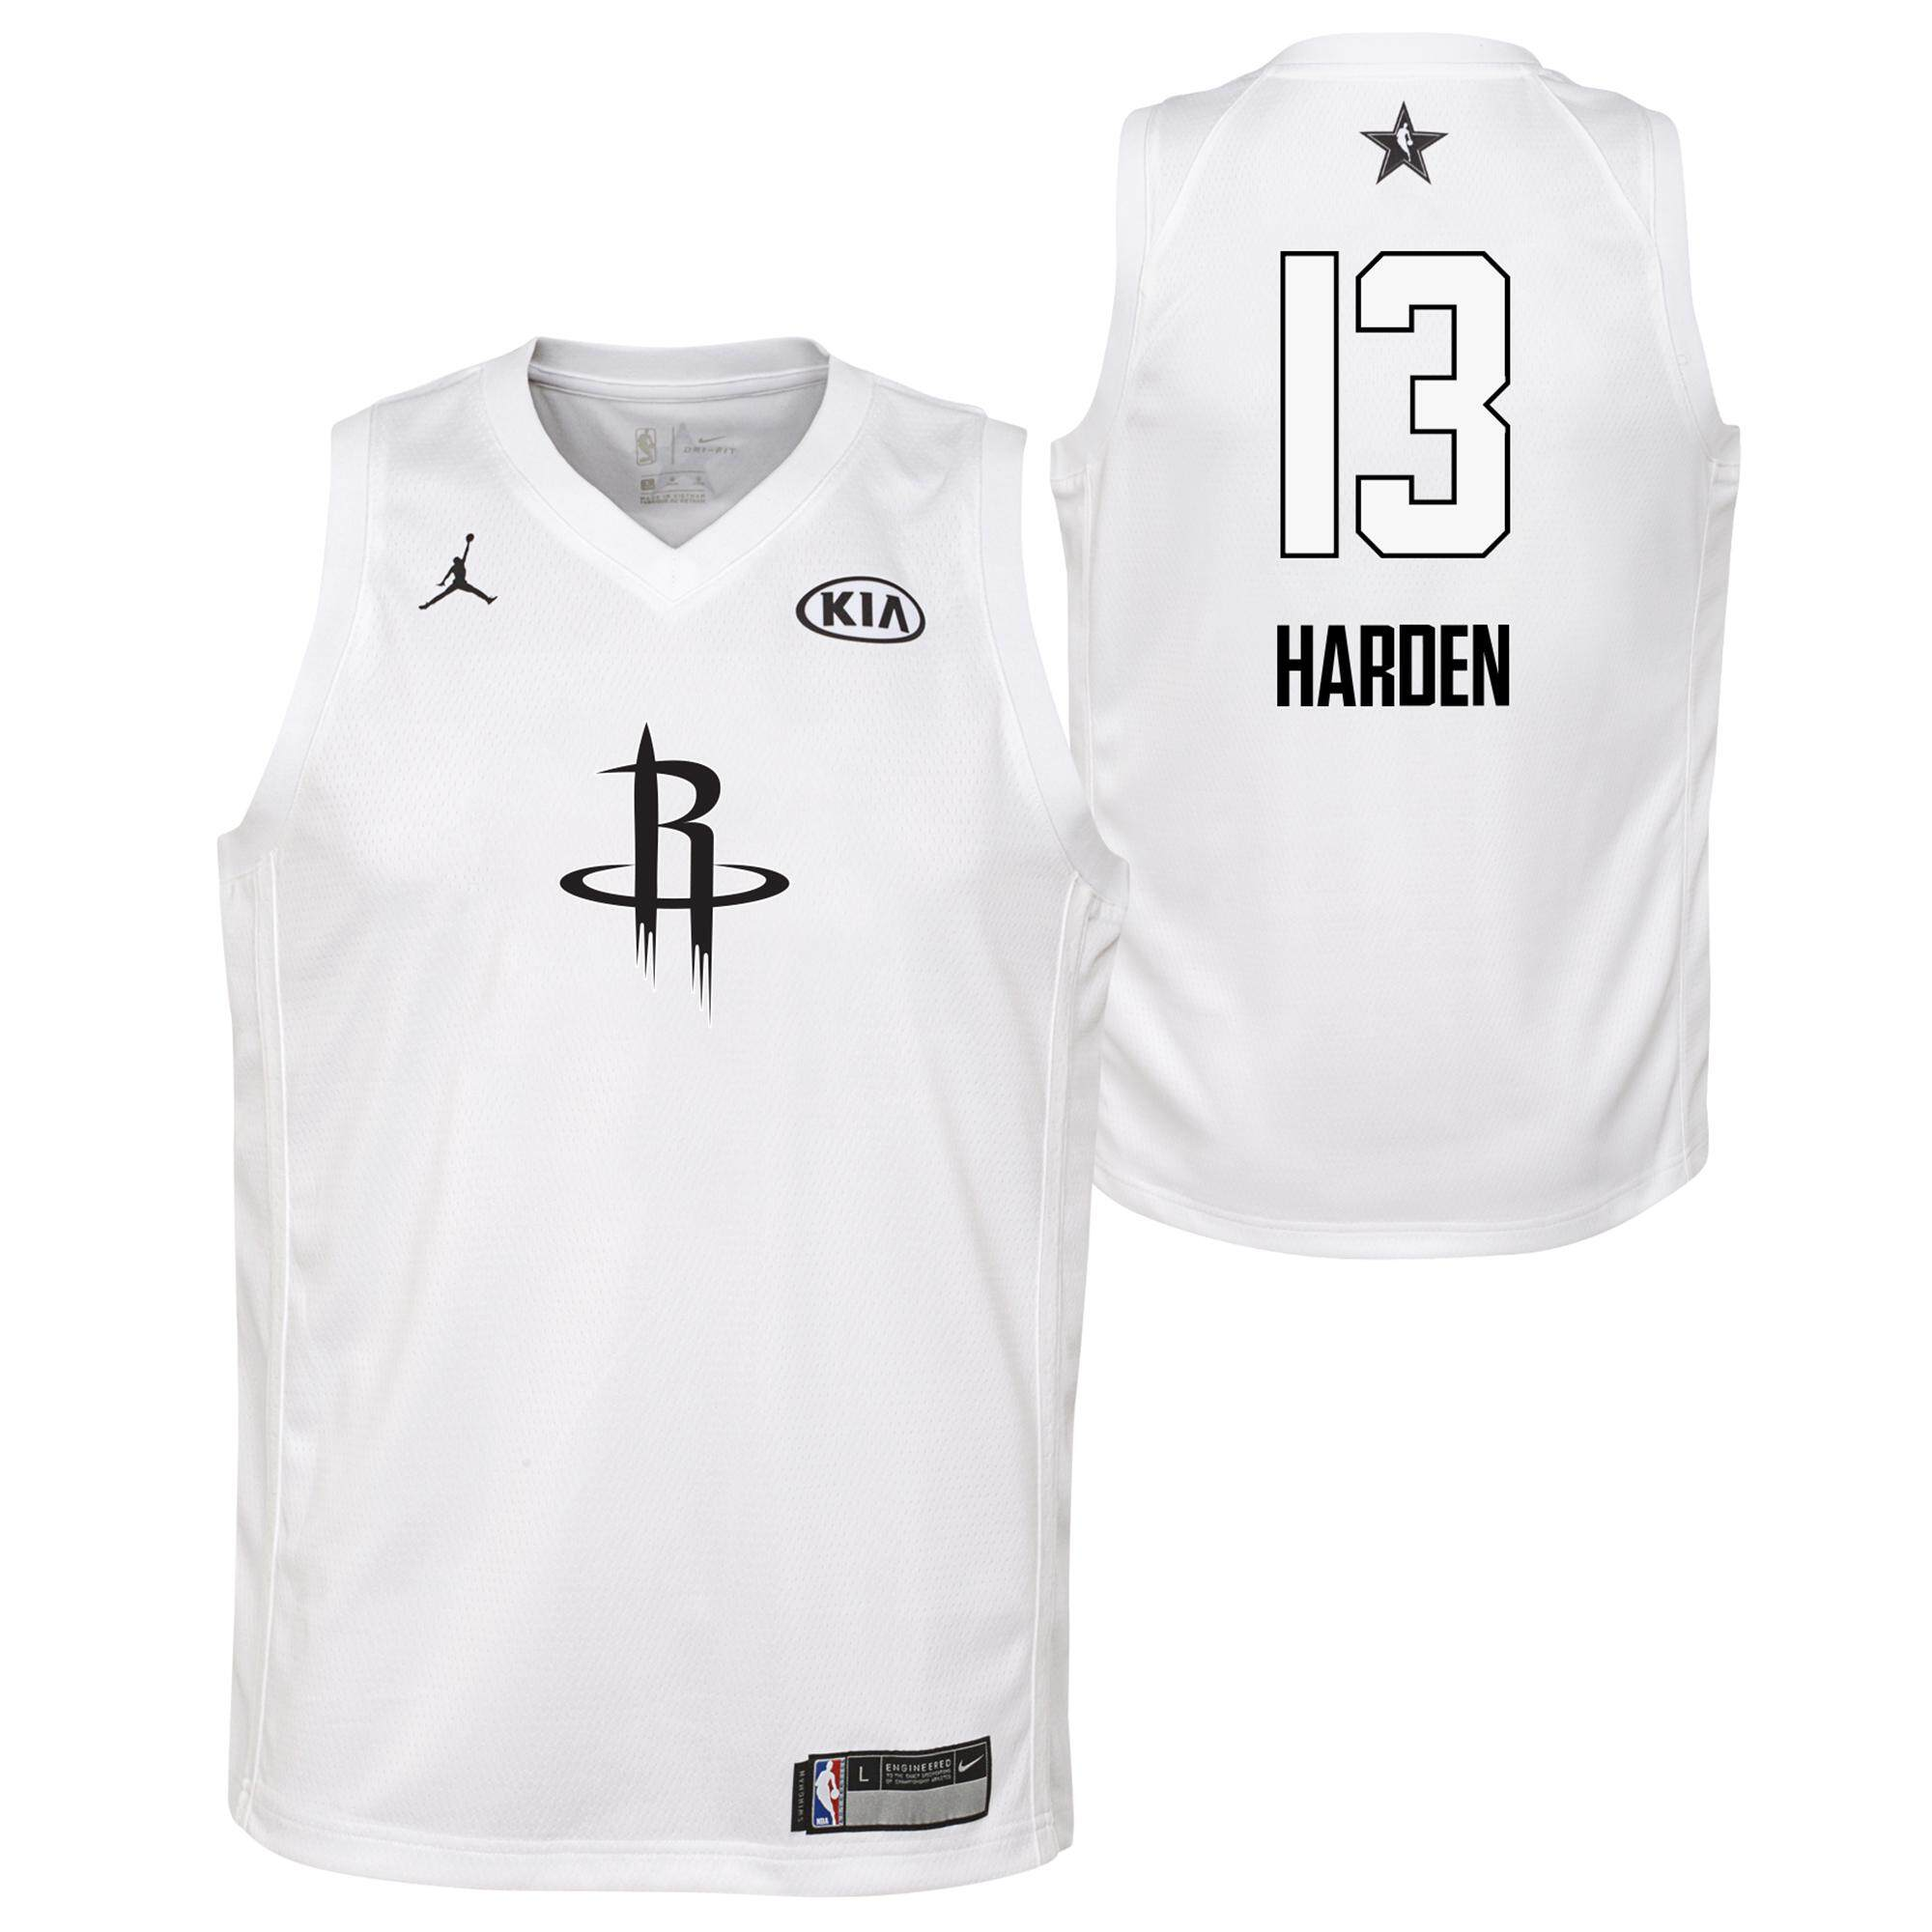 Basketball Jerseys for the Best Price in Malaysia